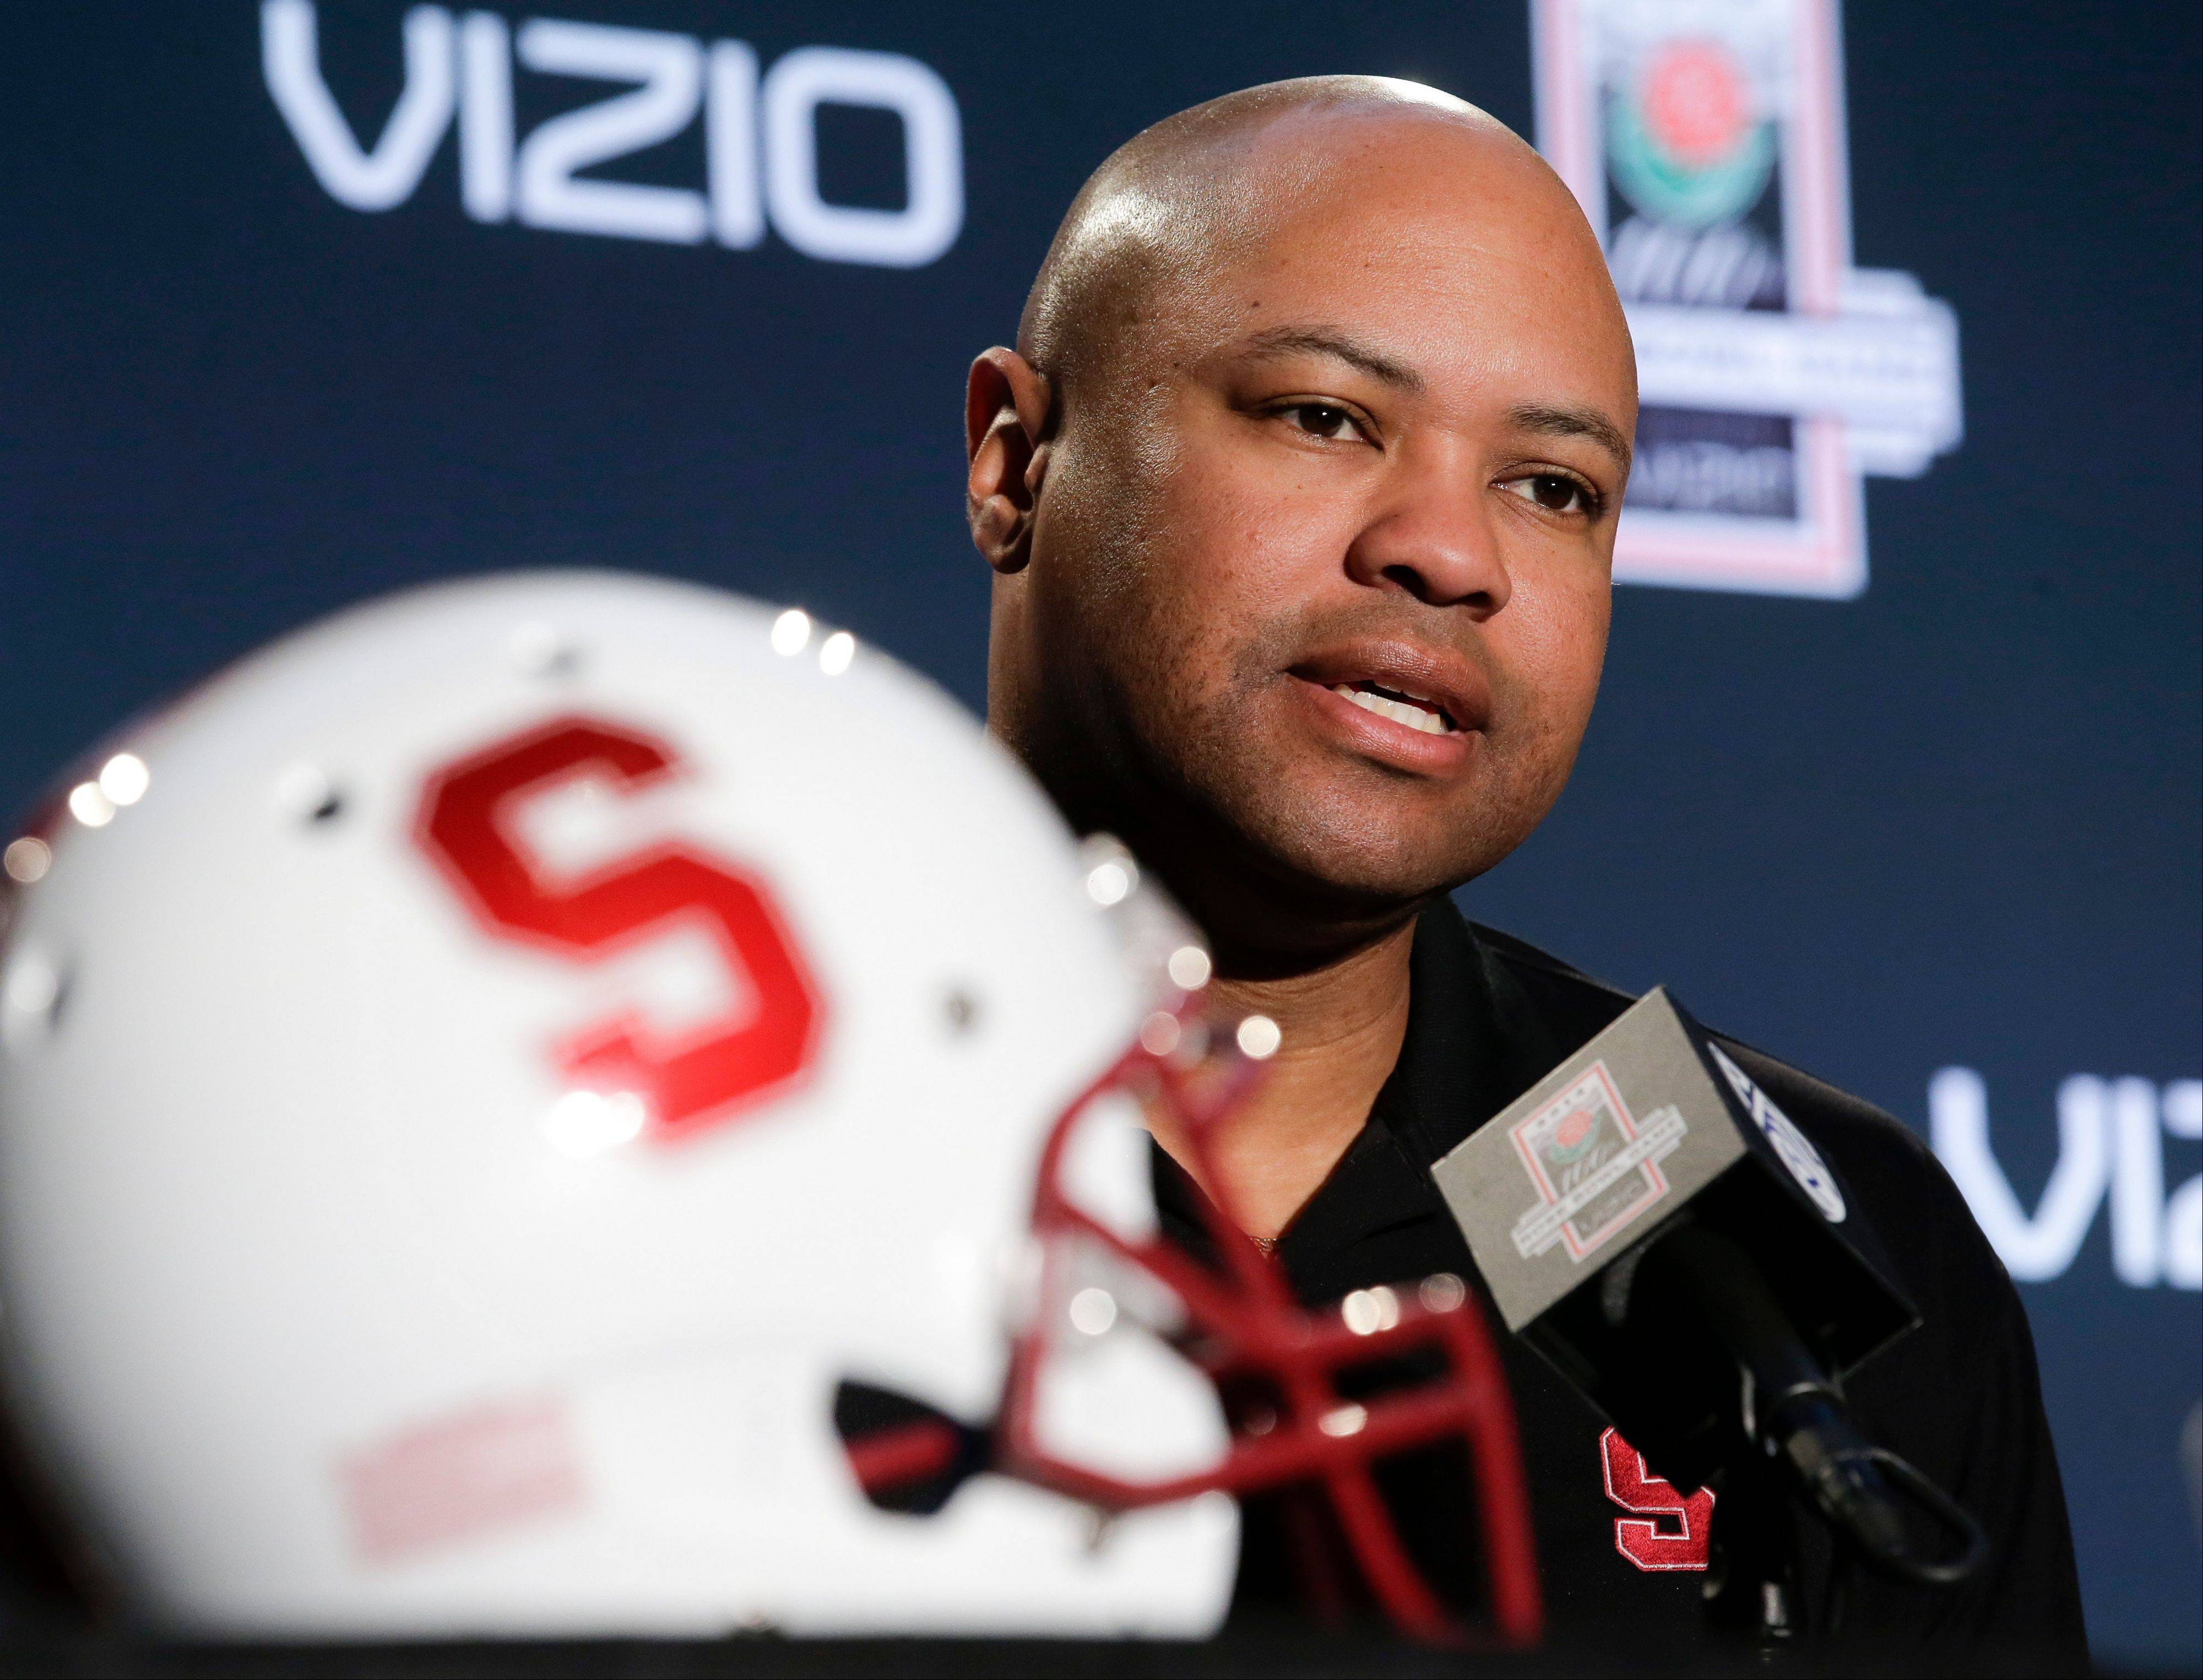 Stanford head coach David Shaw takes questions during a news conference Monday in Los Angeles. Last year, the Cardinal ended a 40-year Rose Bowl victory drought.